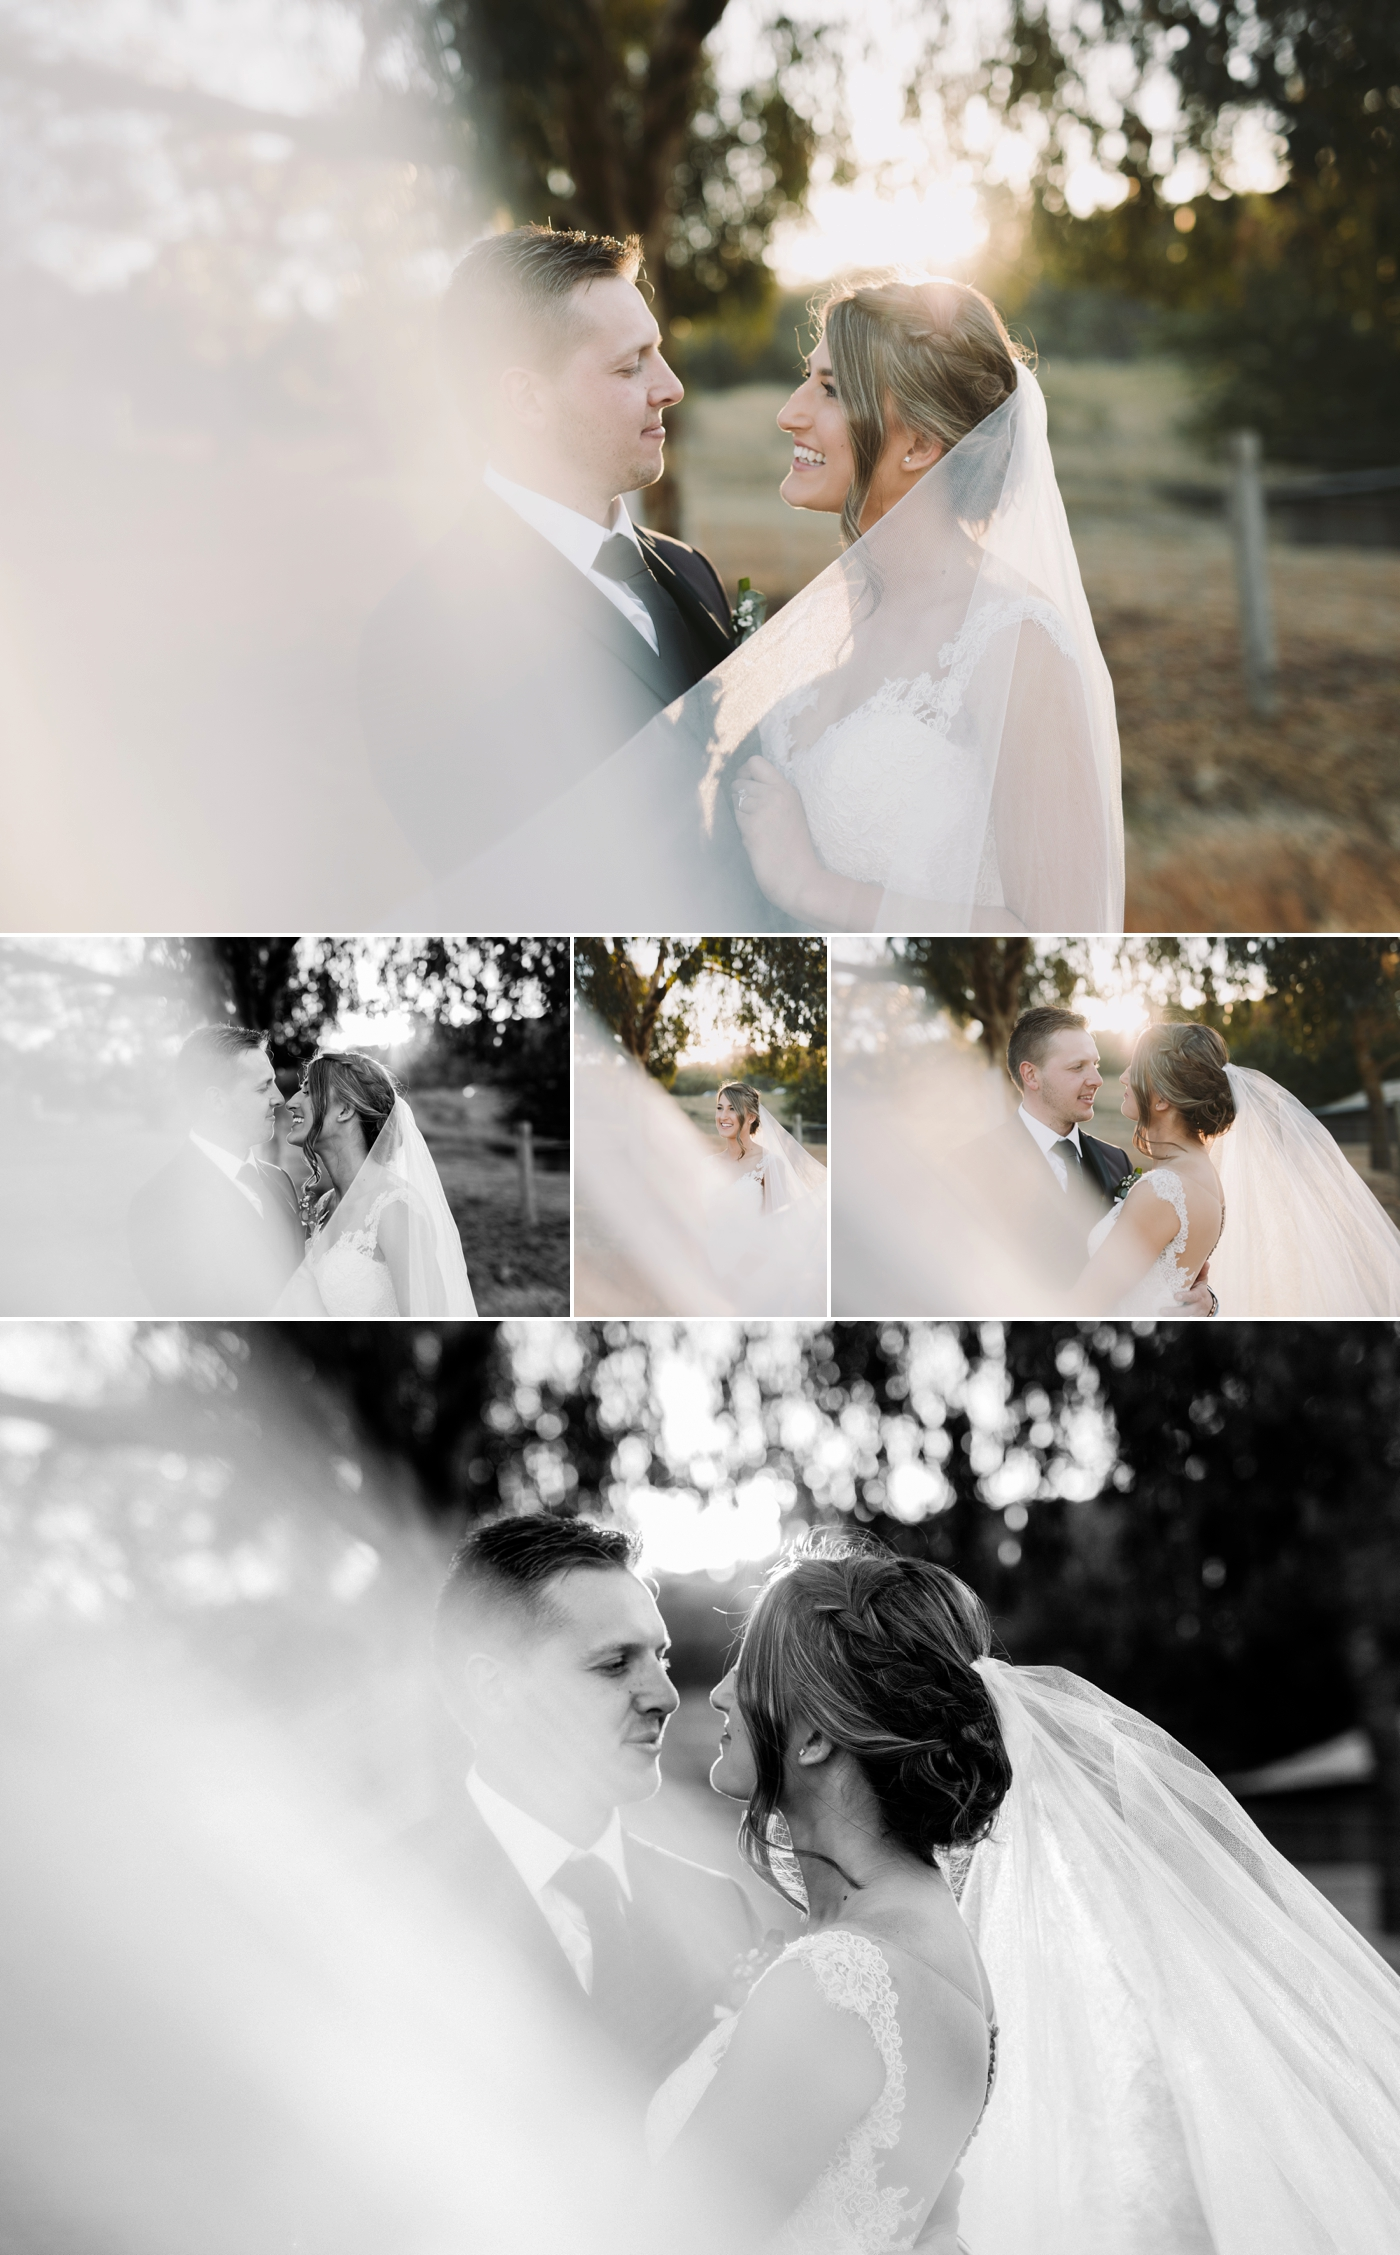 Bec & Mitch - Natural Wedding Photography in Adelaide - Beautiful, candid wedding photographer in Adelaide - Katherine Schultz - www.katherineschultzphotography.com_0046.jpg